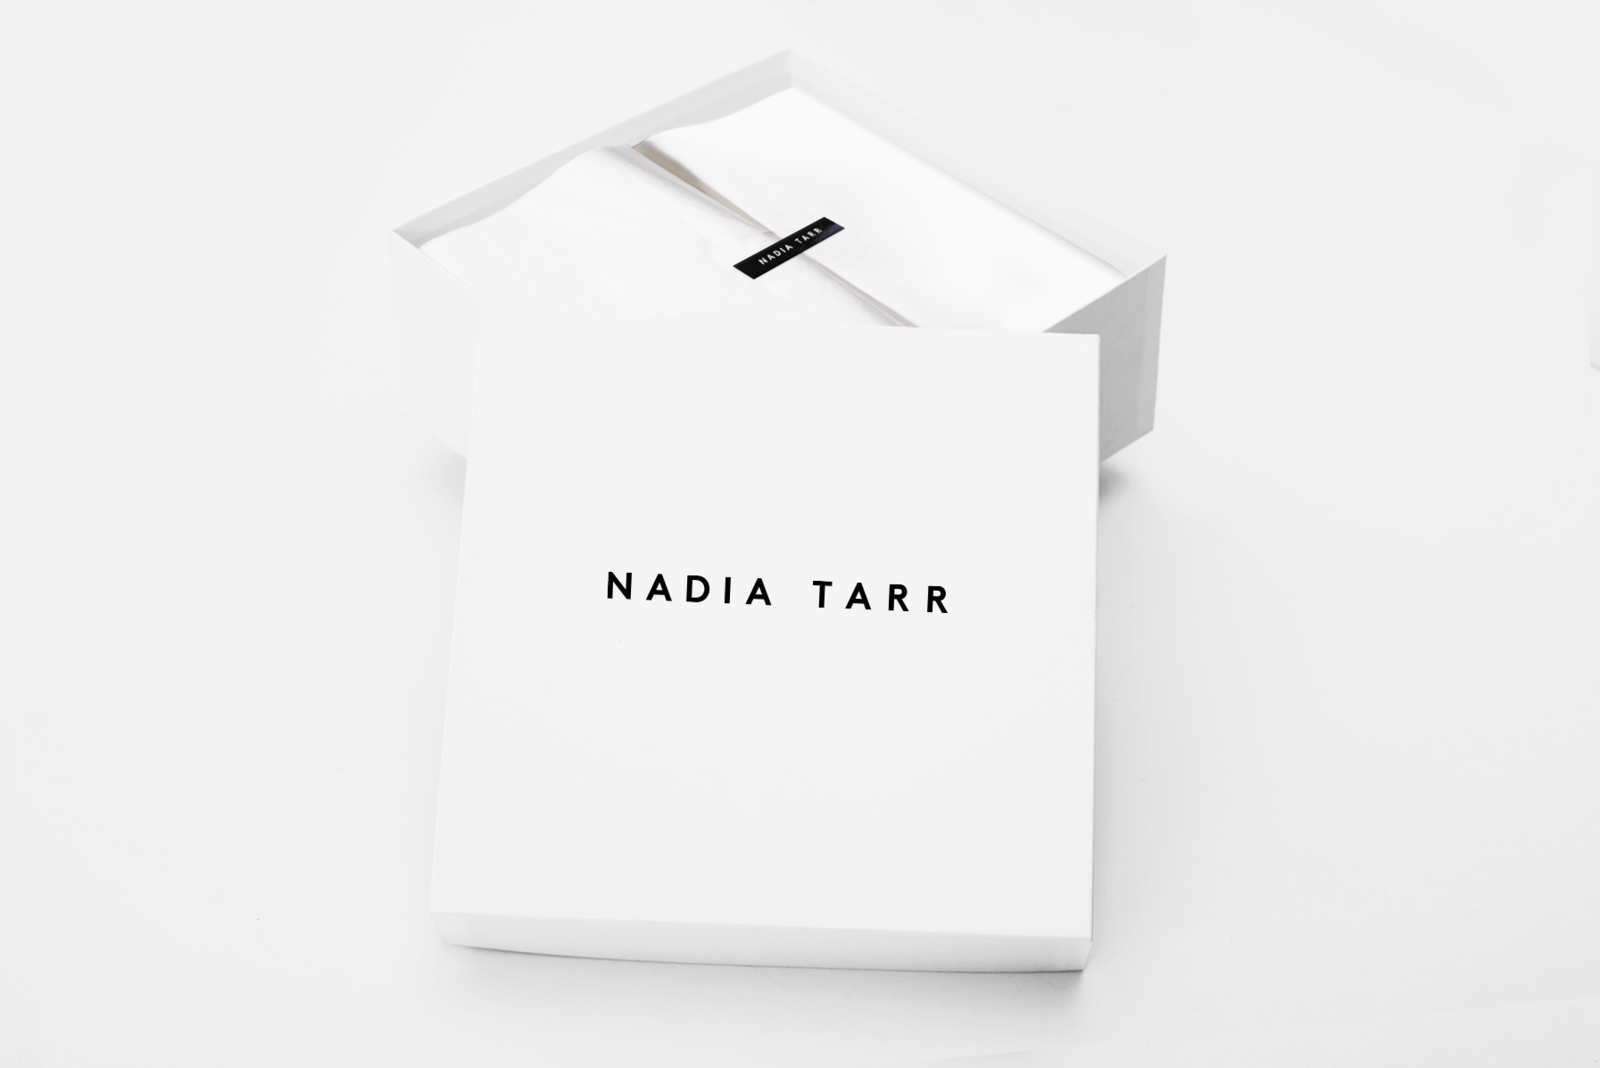 Watson and company nadia tarr collateral 1600 0x0x1793x1197 q85